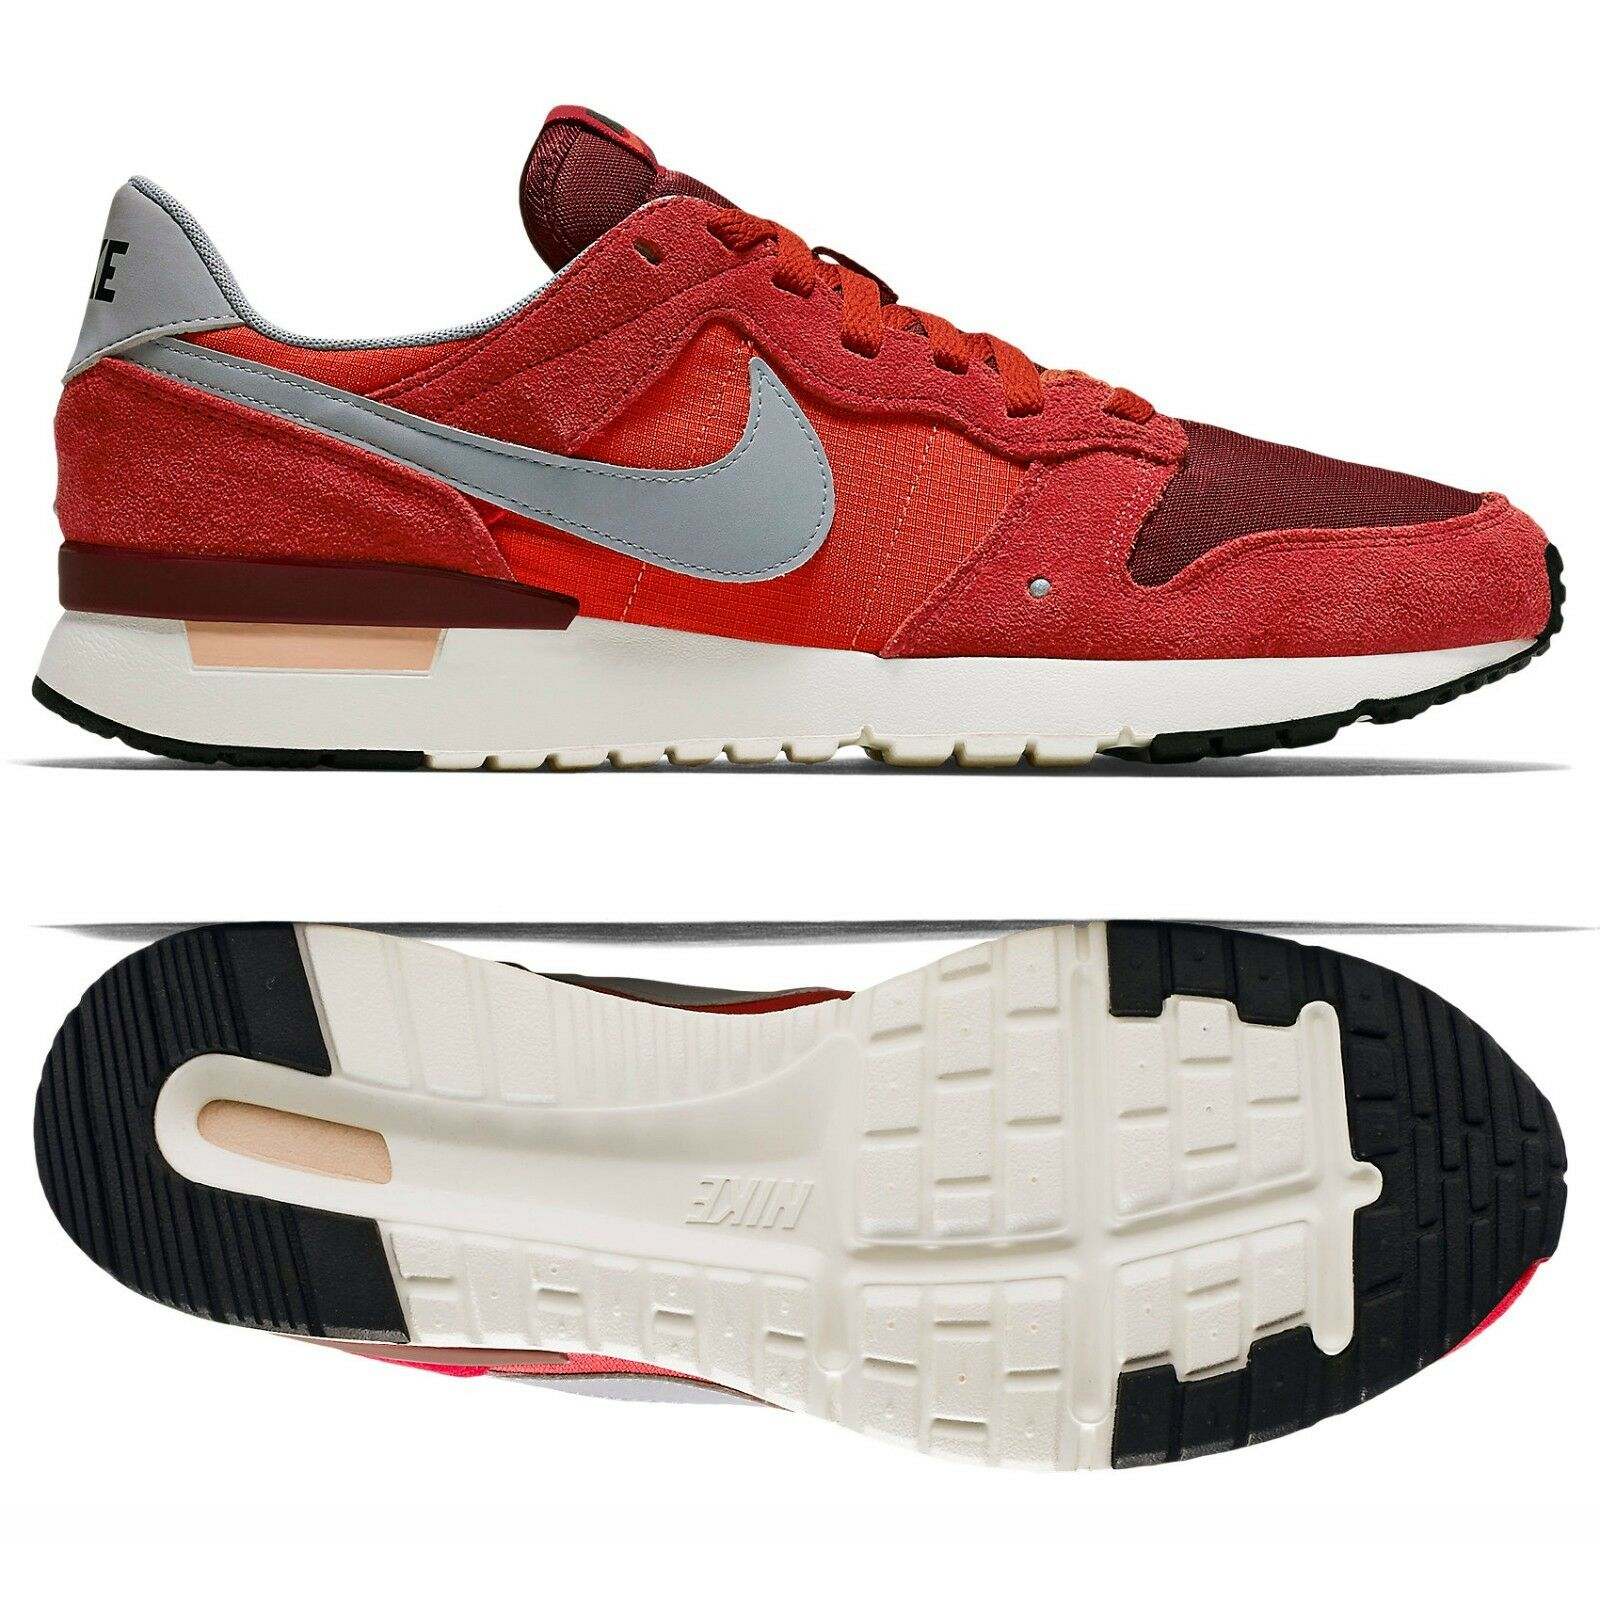 Nike Archive Grey/Cinnabar/Team '83.M 747245-601 Game Red/Wolf Grey/Cinnabar/Team Archive Red Men's Shoes 2c43b8